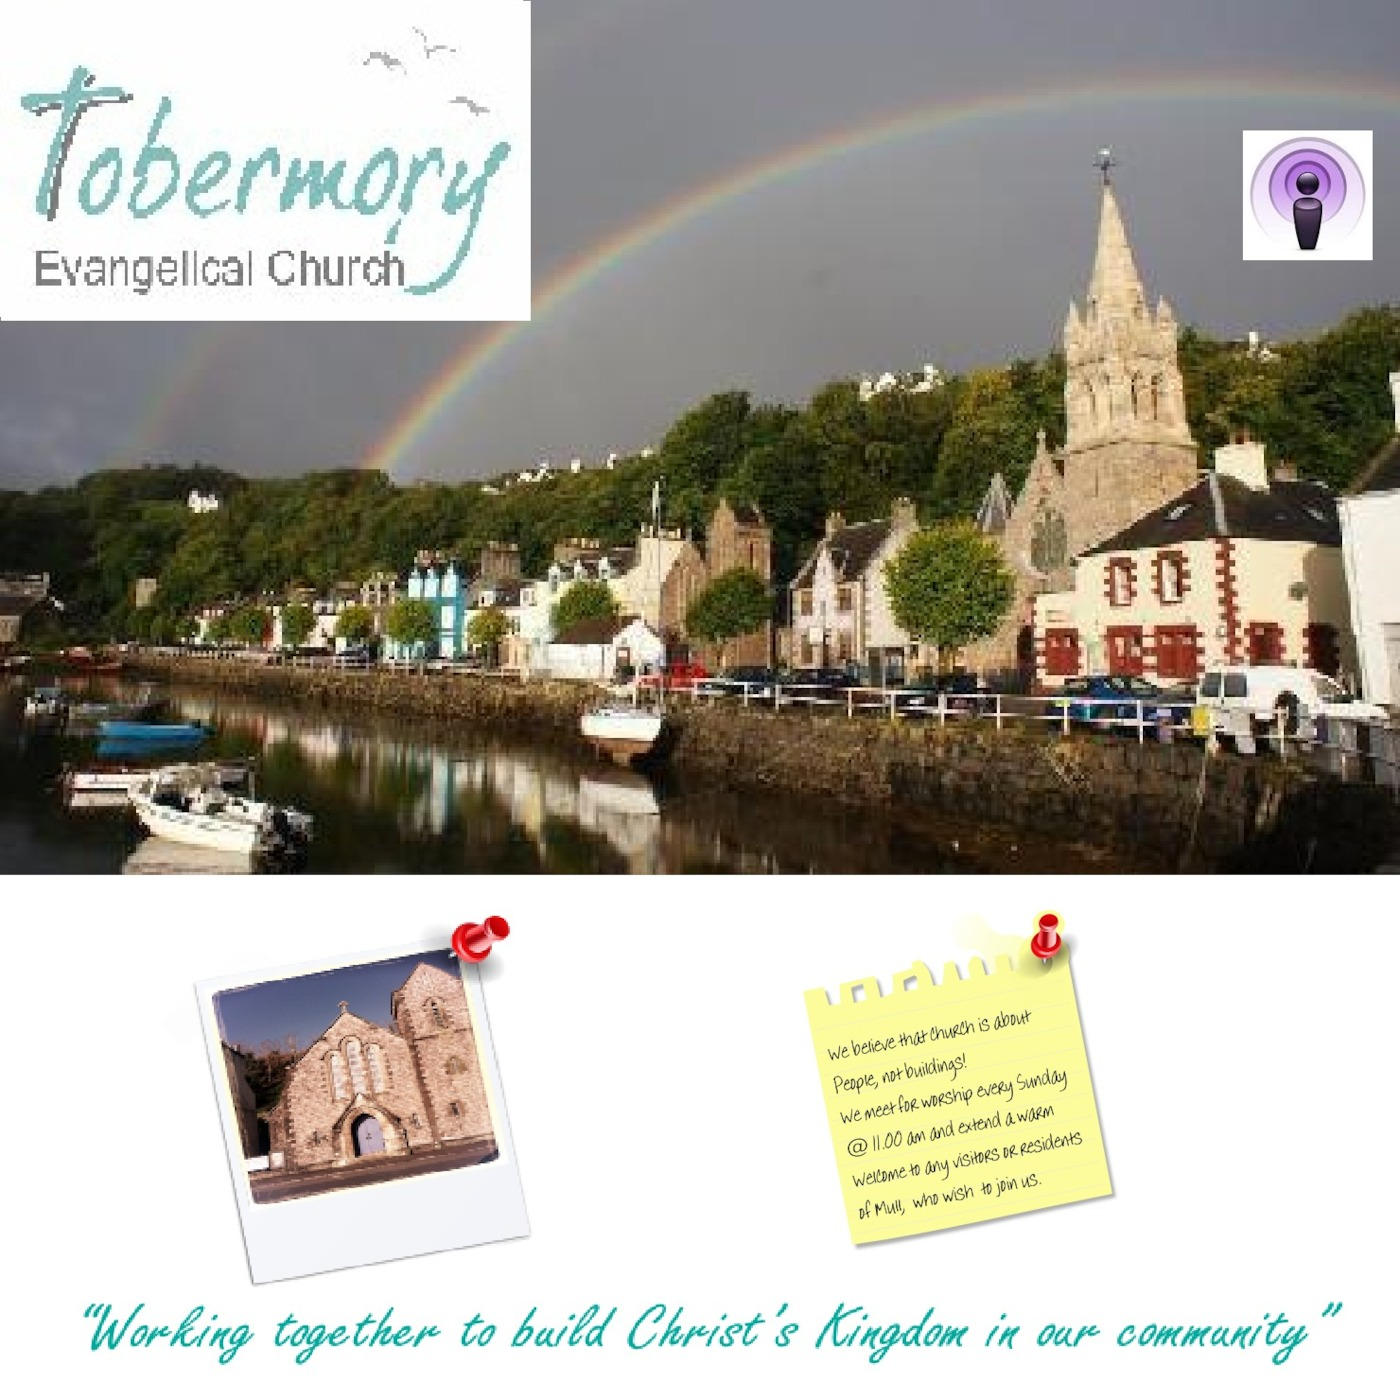 Tobermory Evangelical Church